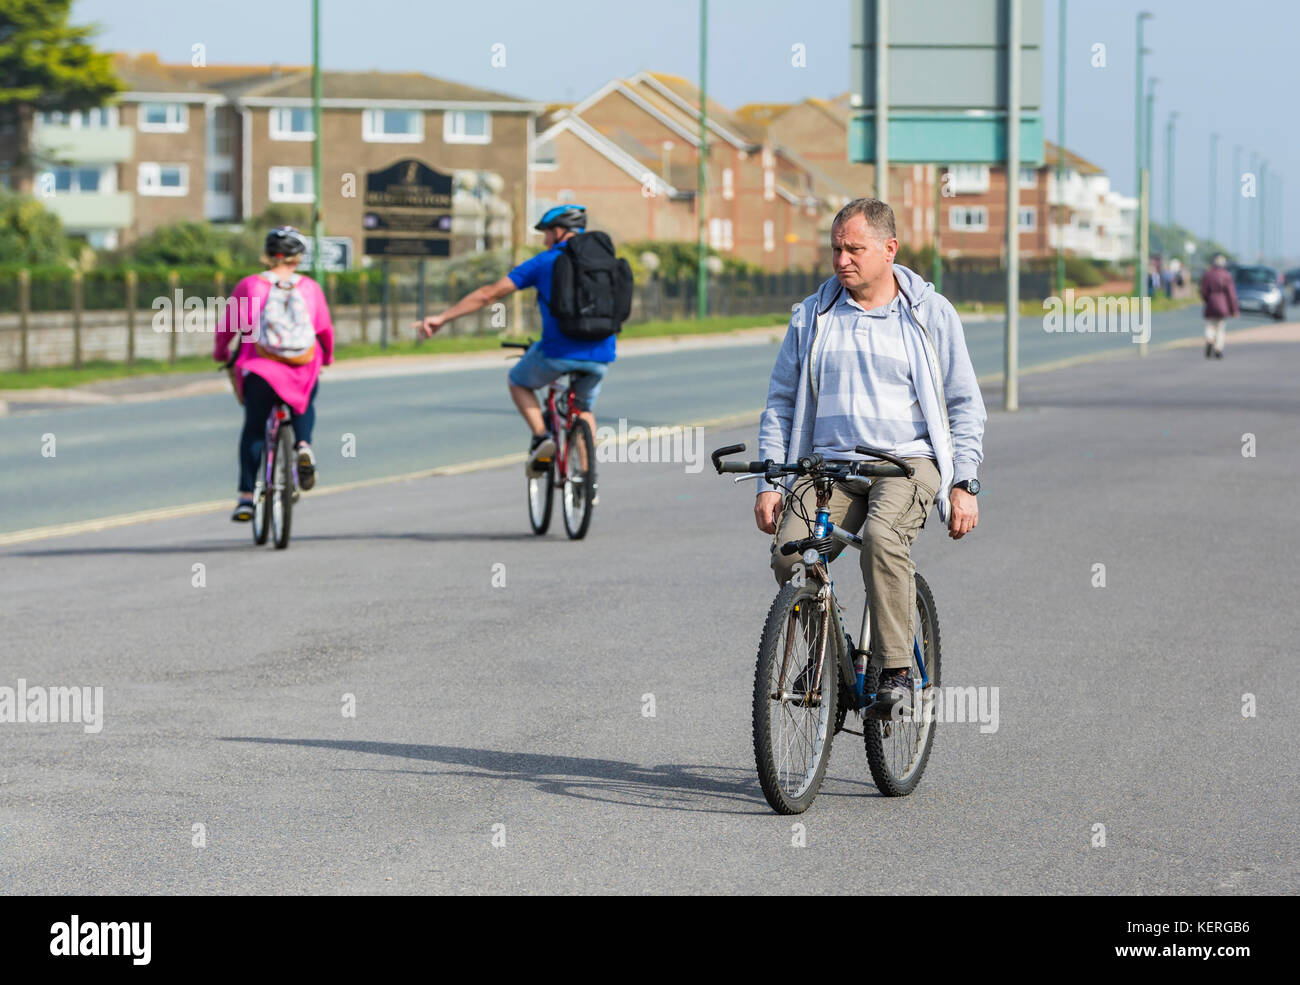 Man cycling without holding onto the handlebars. - Stock Image